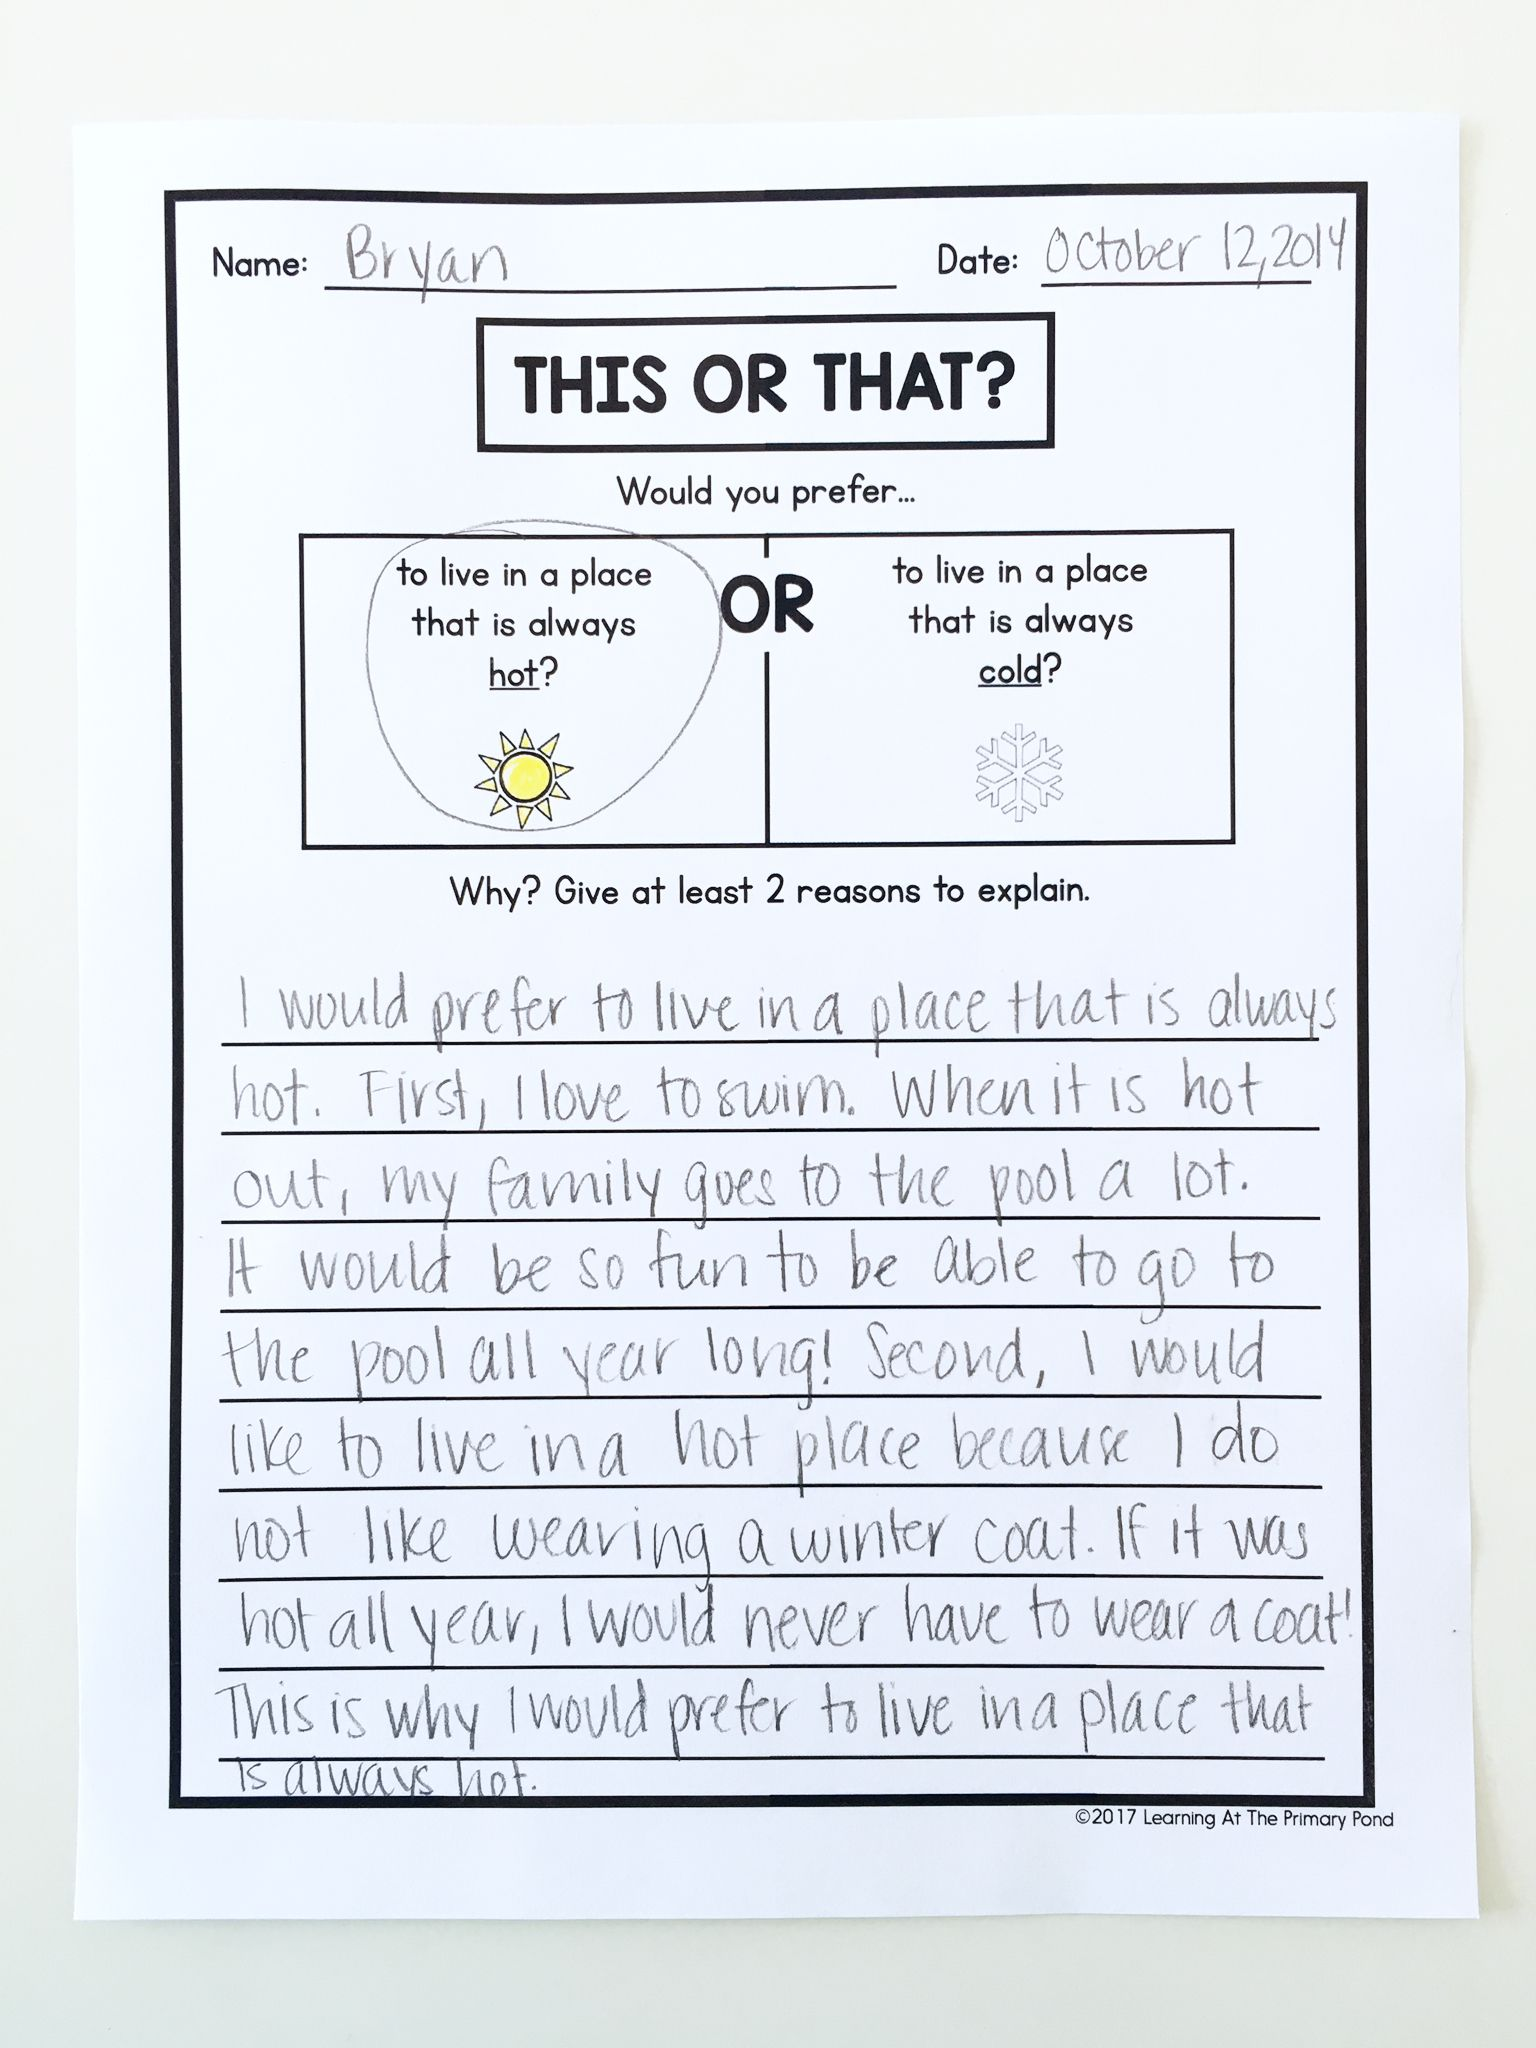 small resolution of Opinion writing activity for second grade - kids choose between two options  and explain their pre…   Writing center